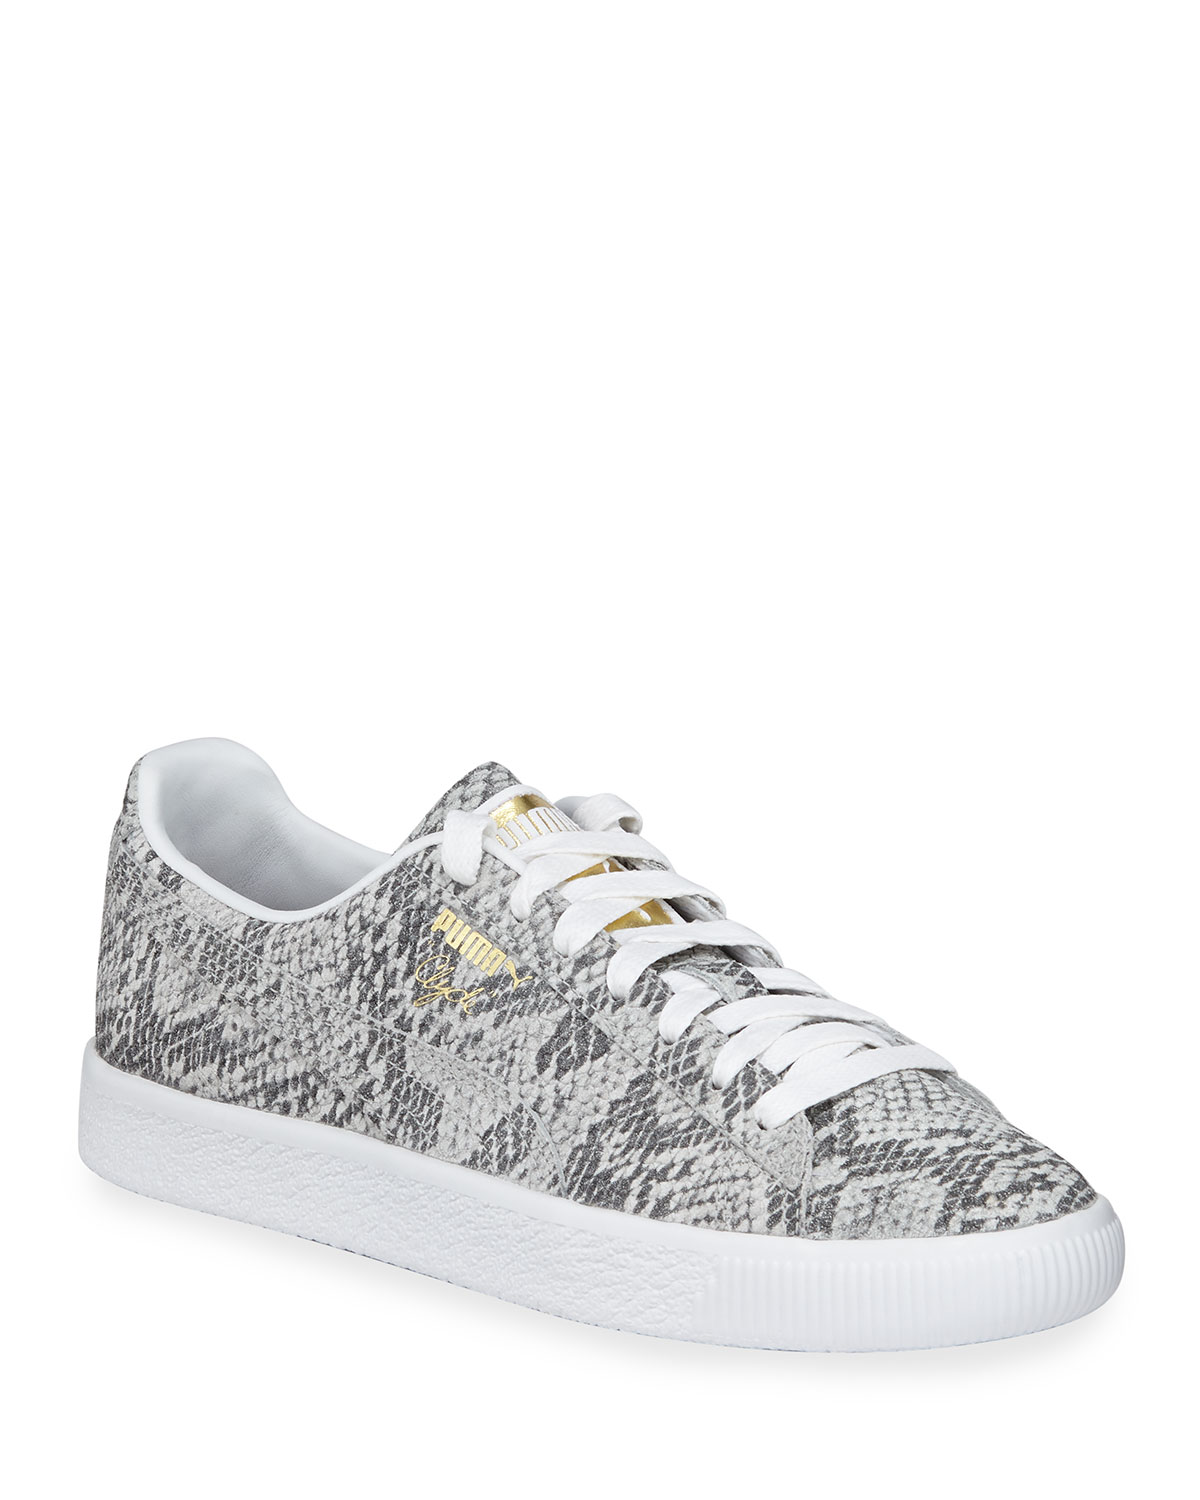 651c26a4fb3aac Puma Clyde Snake-Print Leather Lace-Up Sneakers